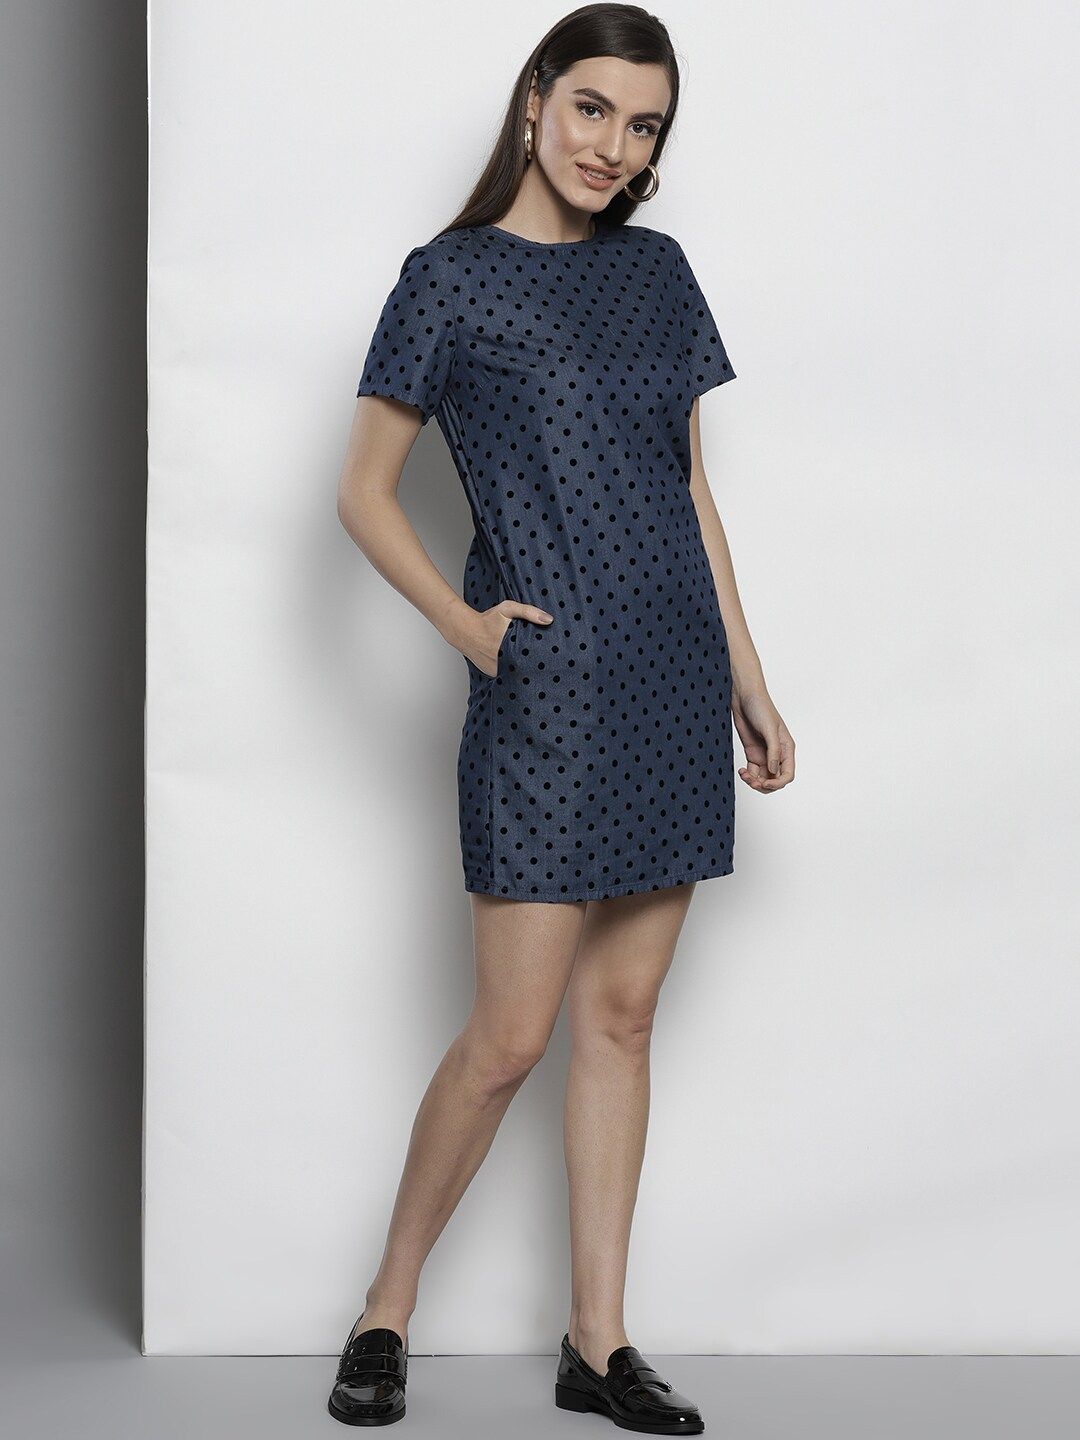 Polka Dots Dresses - Buy Polka Dots Dresses online in India - Myntra 8fabe5ec0b7e